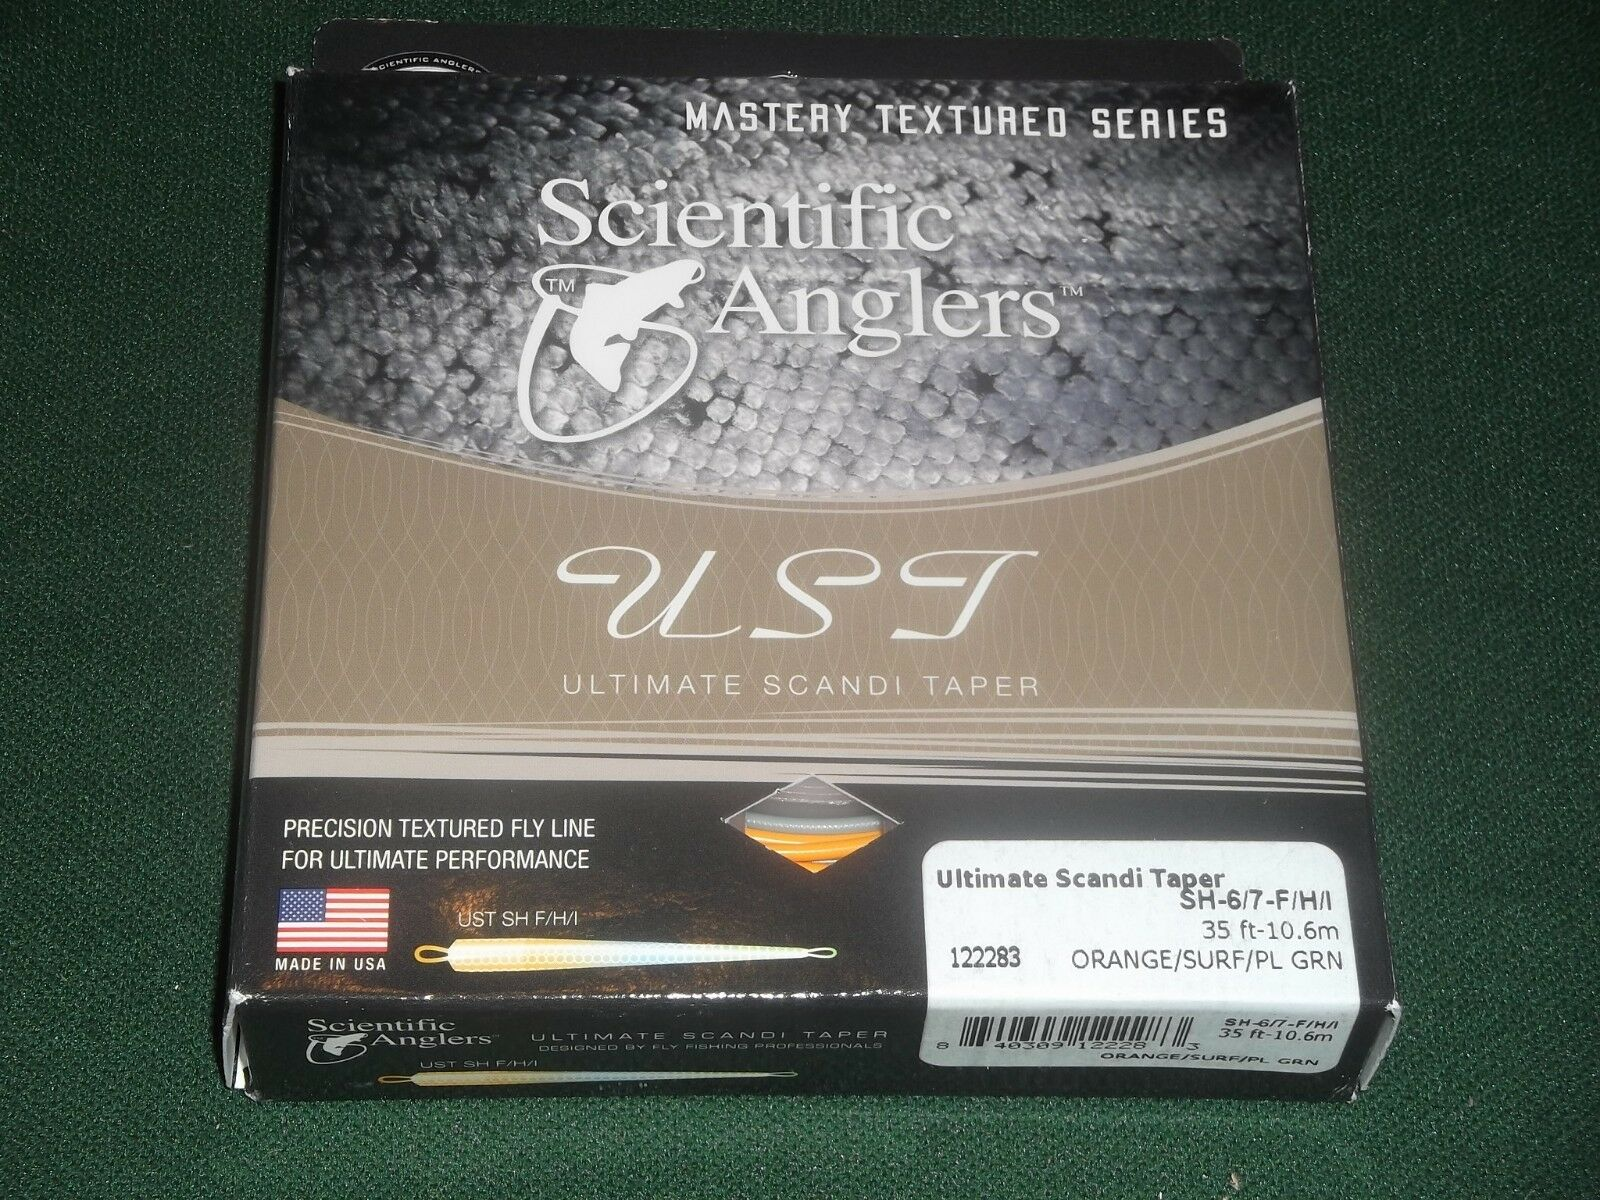 SCIENTIFIC ANGLERS ULTIMATE SCANDI TAPER SH-6 7-F H I orange SURF PL GRN LINE